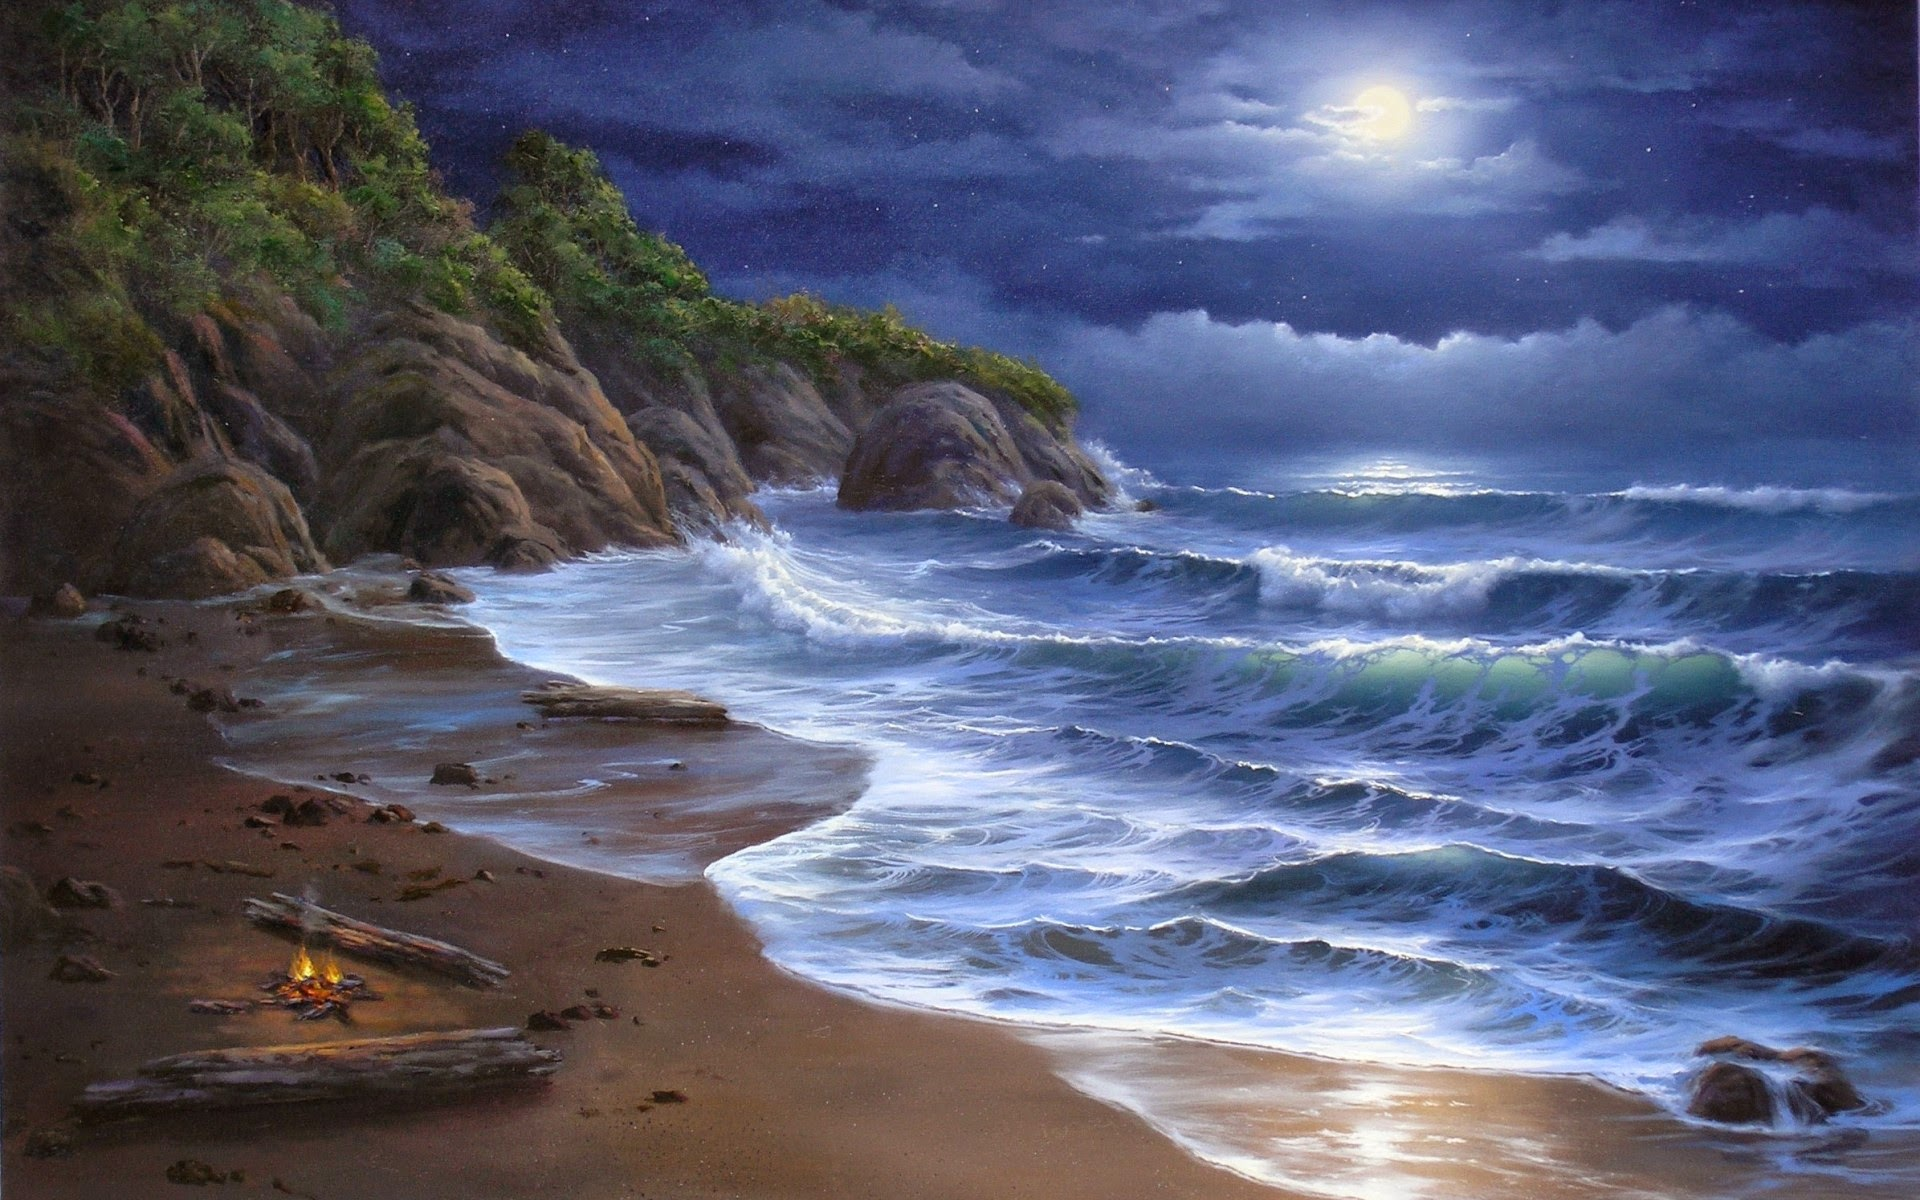 beaches clouds ocean Sea seascapes nature sky waves